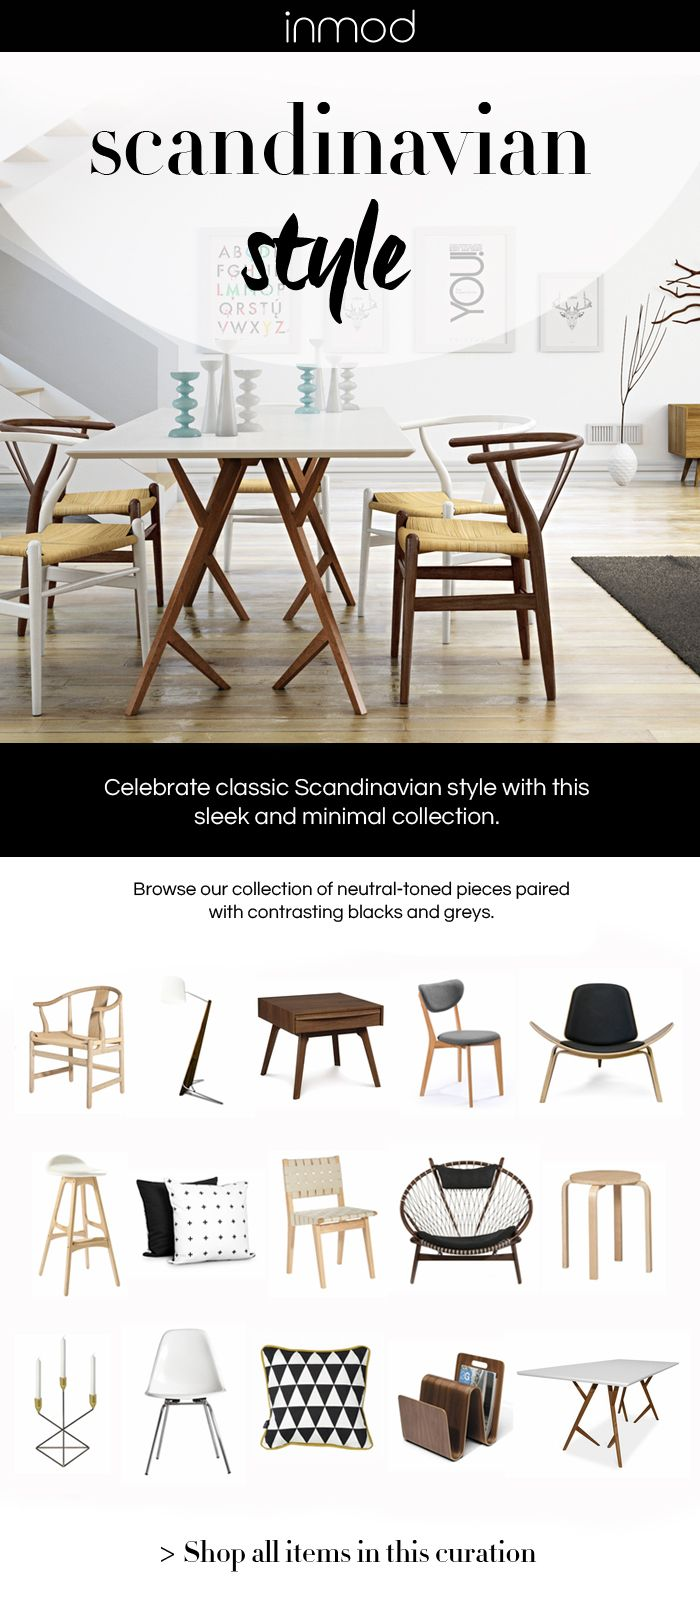 Modern owes so much to Scandinavian design. The beauty of Scandinavian design, at its core, is simplistic minimalism - elegant but understated lines and forms that define intent and function. Shop Inmod's favorite Scandinavian & Scandinavian-inspired furniture, lighting & decor.